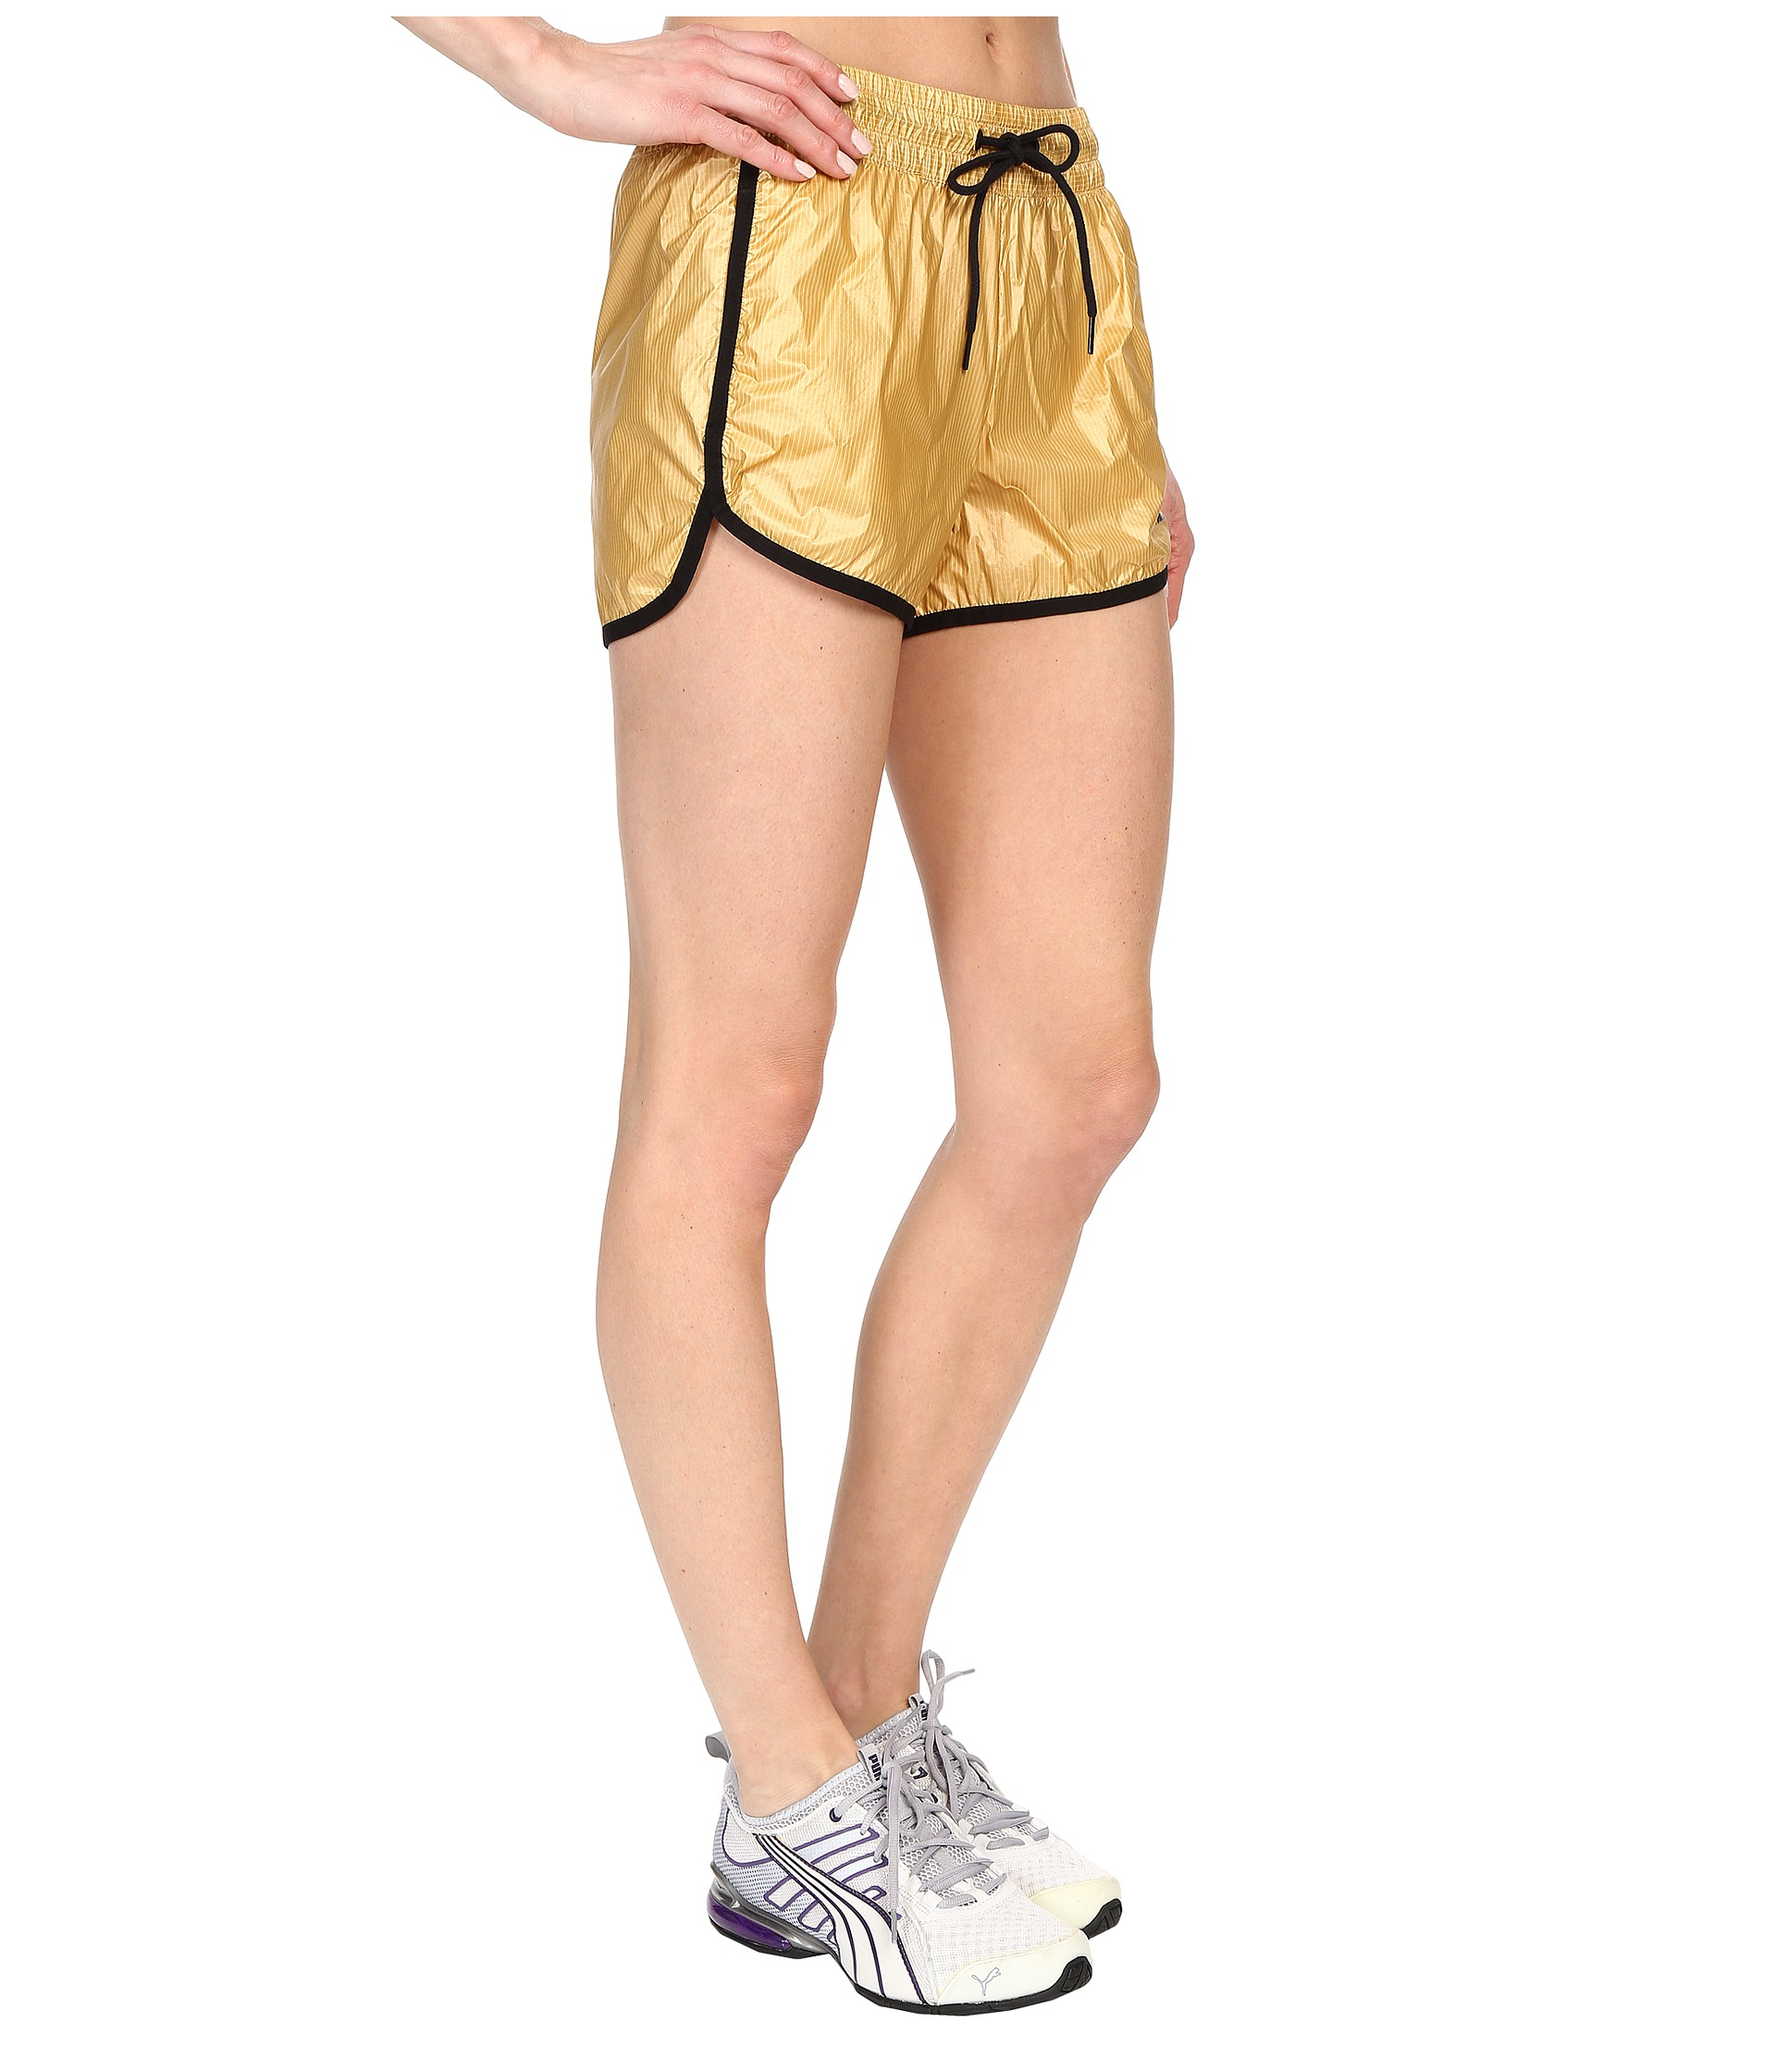 914ea9779cce Lyst - PUMA Gold Shorts in Metallic